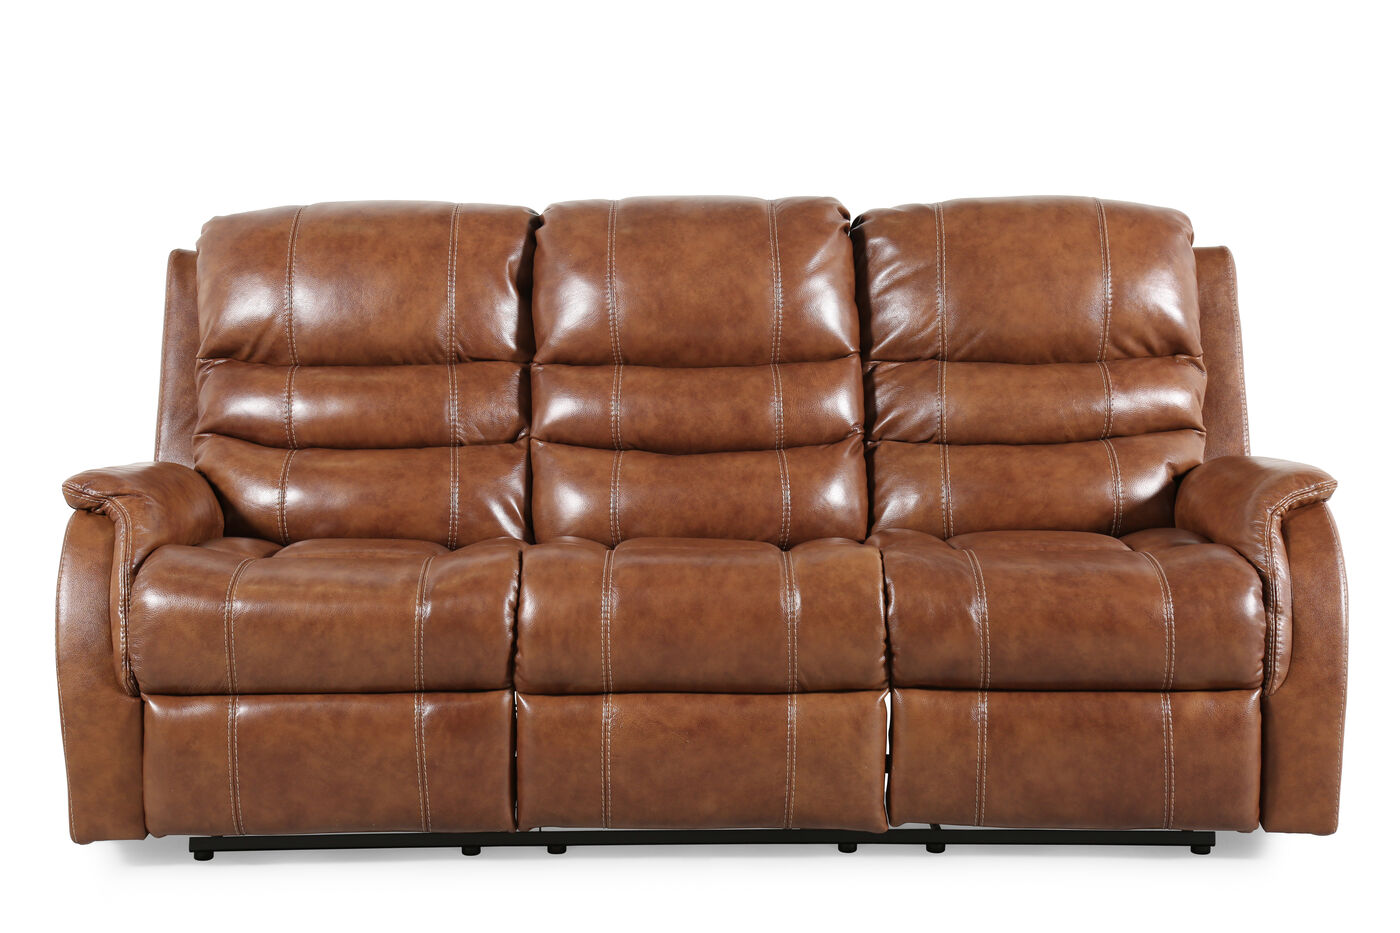 Mathis Brothers Leather Sofas Bernhardt Leather Sofa Mathis Brothers Thesofa